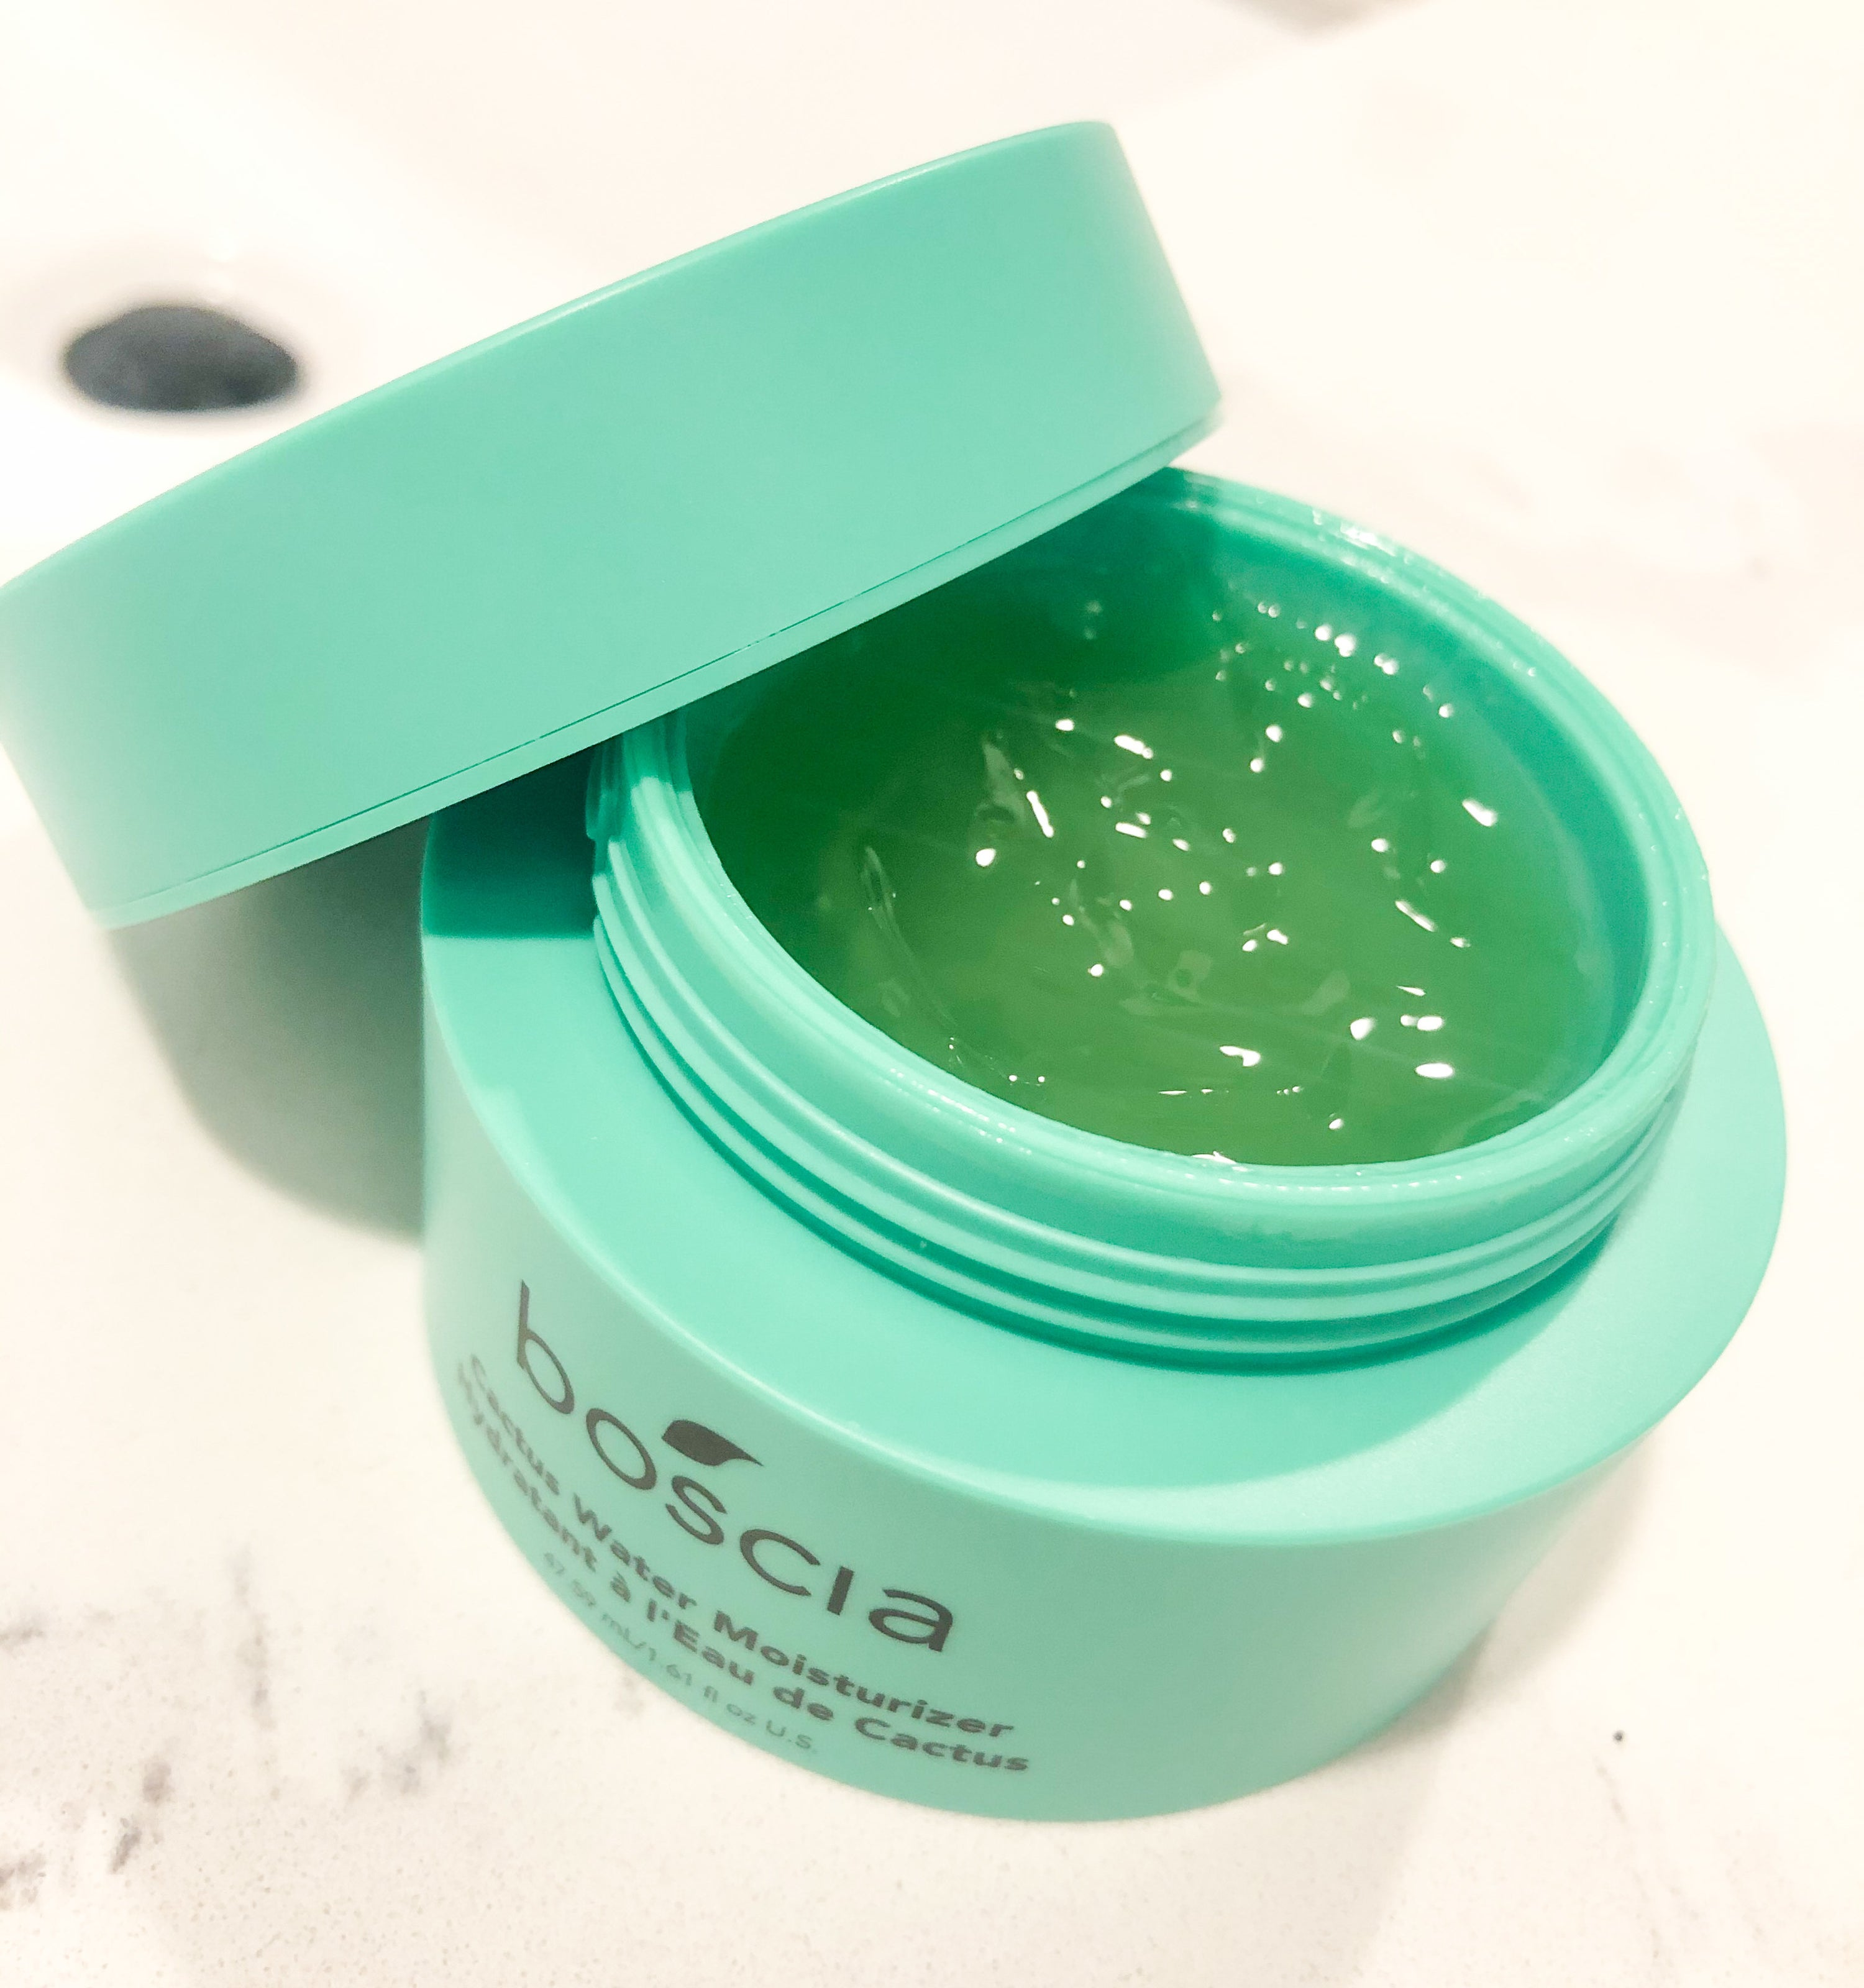 A close up of an open jar of the moisturizer, showing off its gel texture